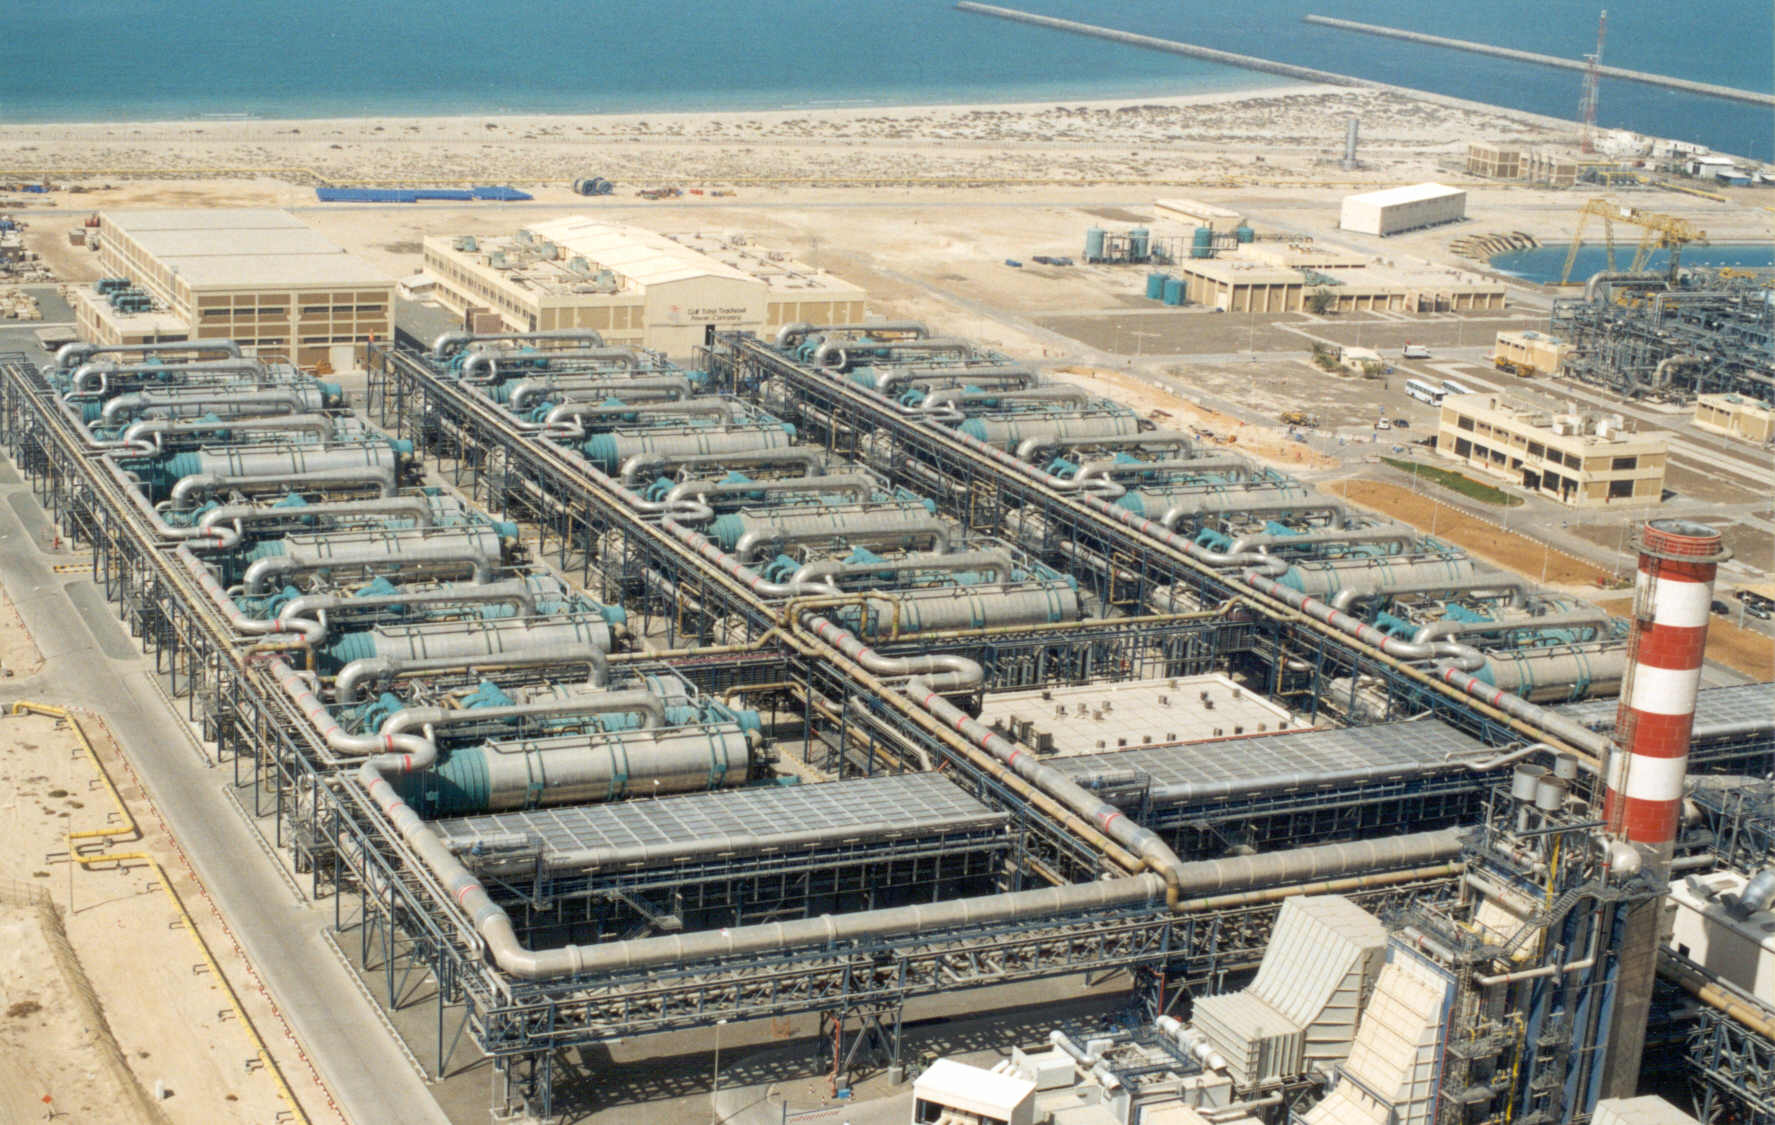 Morocco expected to be home to Africa's largest desalination plant